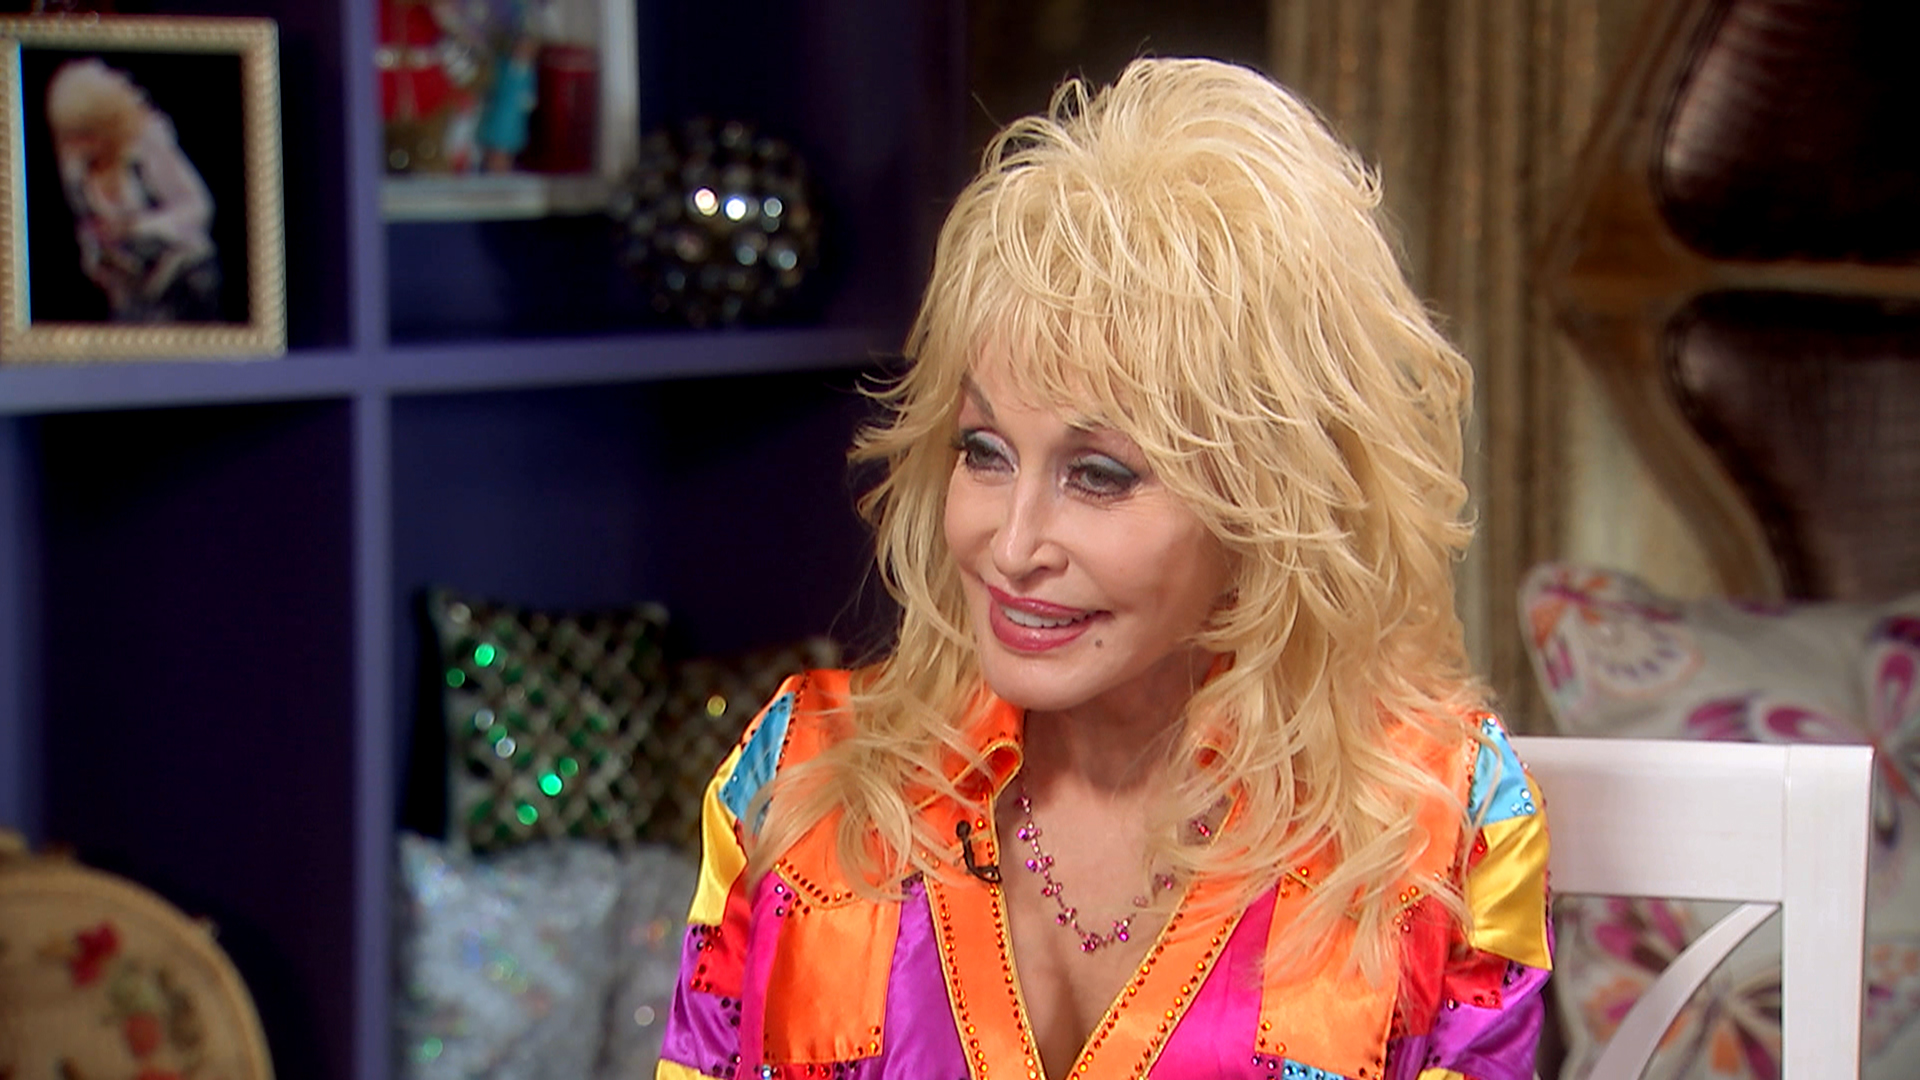 Dolly Parton: Dolly Parton On Her Childhood: 'We Were Rich In Things